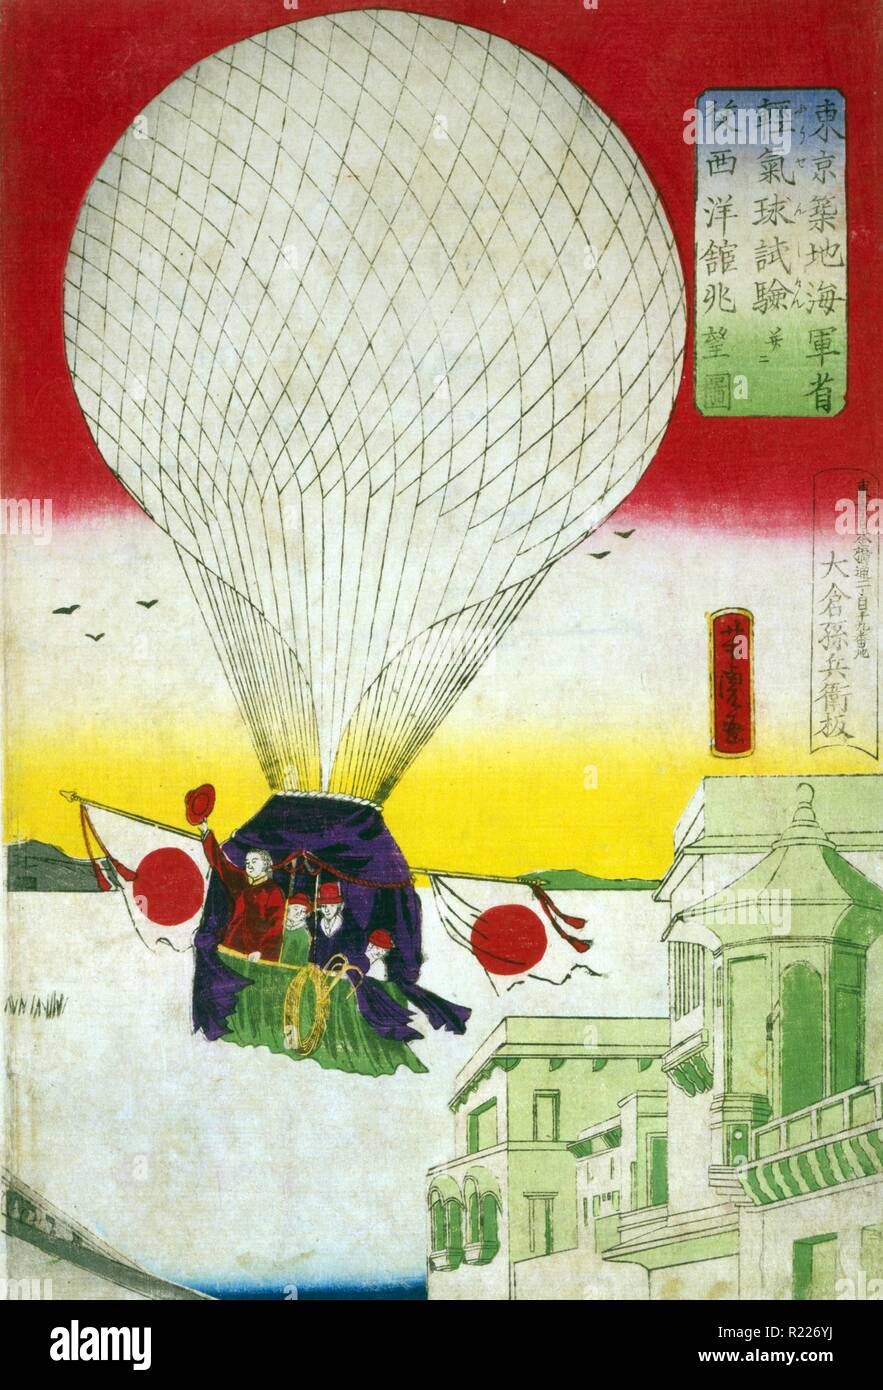 Japanese navy department tests balloons in front of the American Consulate by Yoshitora Utagawa, 1867 - Stock Image